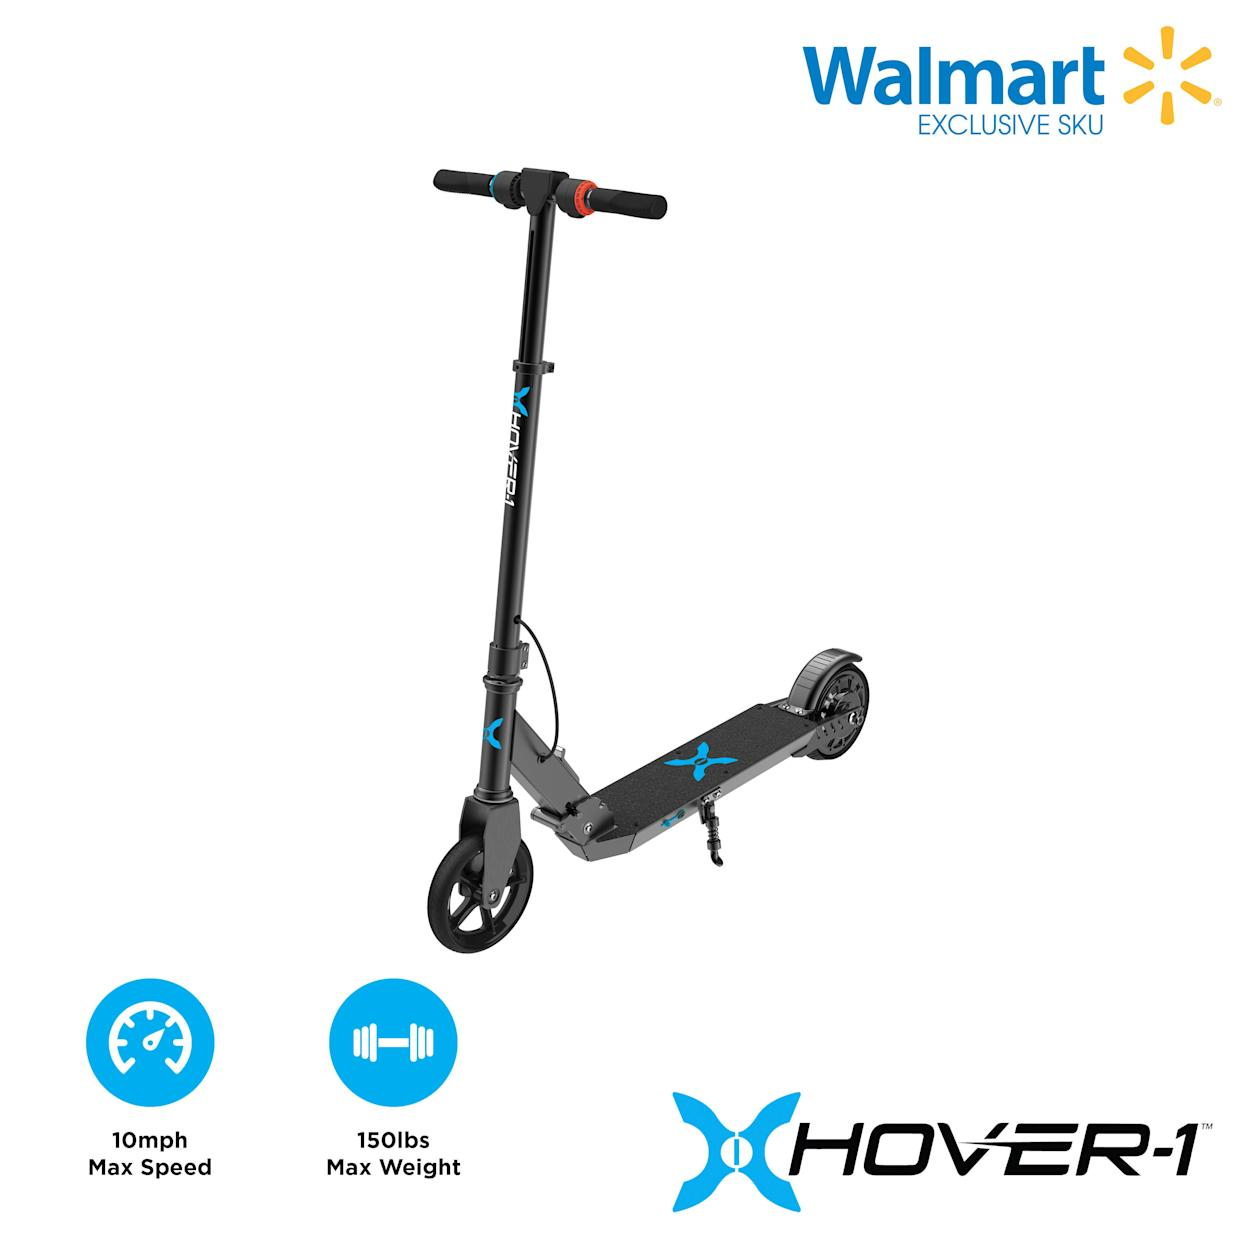 "This electric scooter goes 10 mph. <strong><a href=""https://fave.co/2PFsgv1"" rel=""nofollow noopener"" target=""_blank"" data-ylk=""slk:Find it for $148 at Walmart"" class=""link rapid-noclick-resp"">Find it for $148 at Walmart</a>.</strong>"